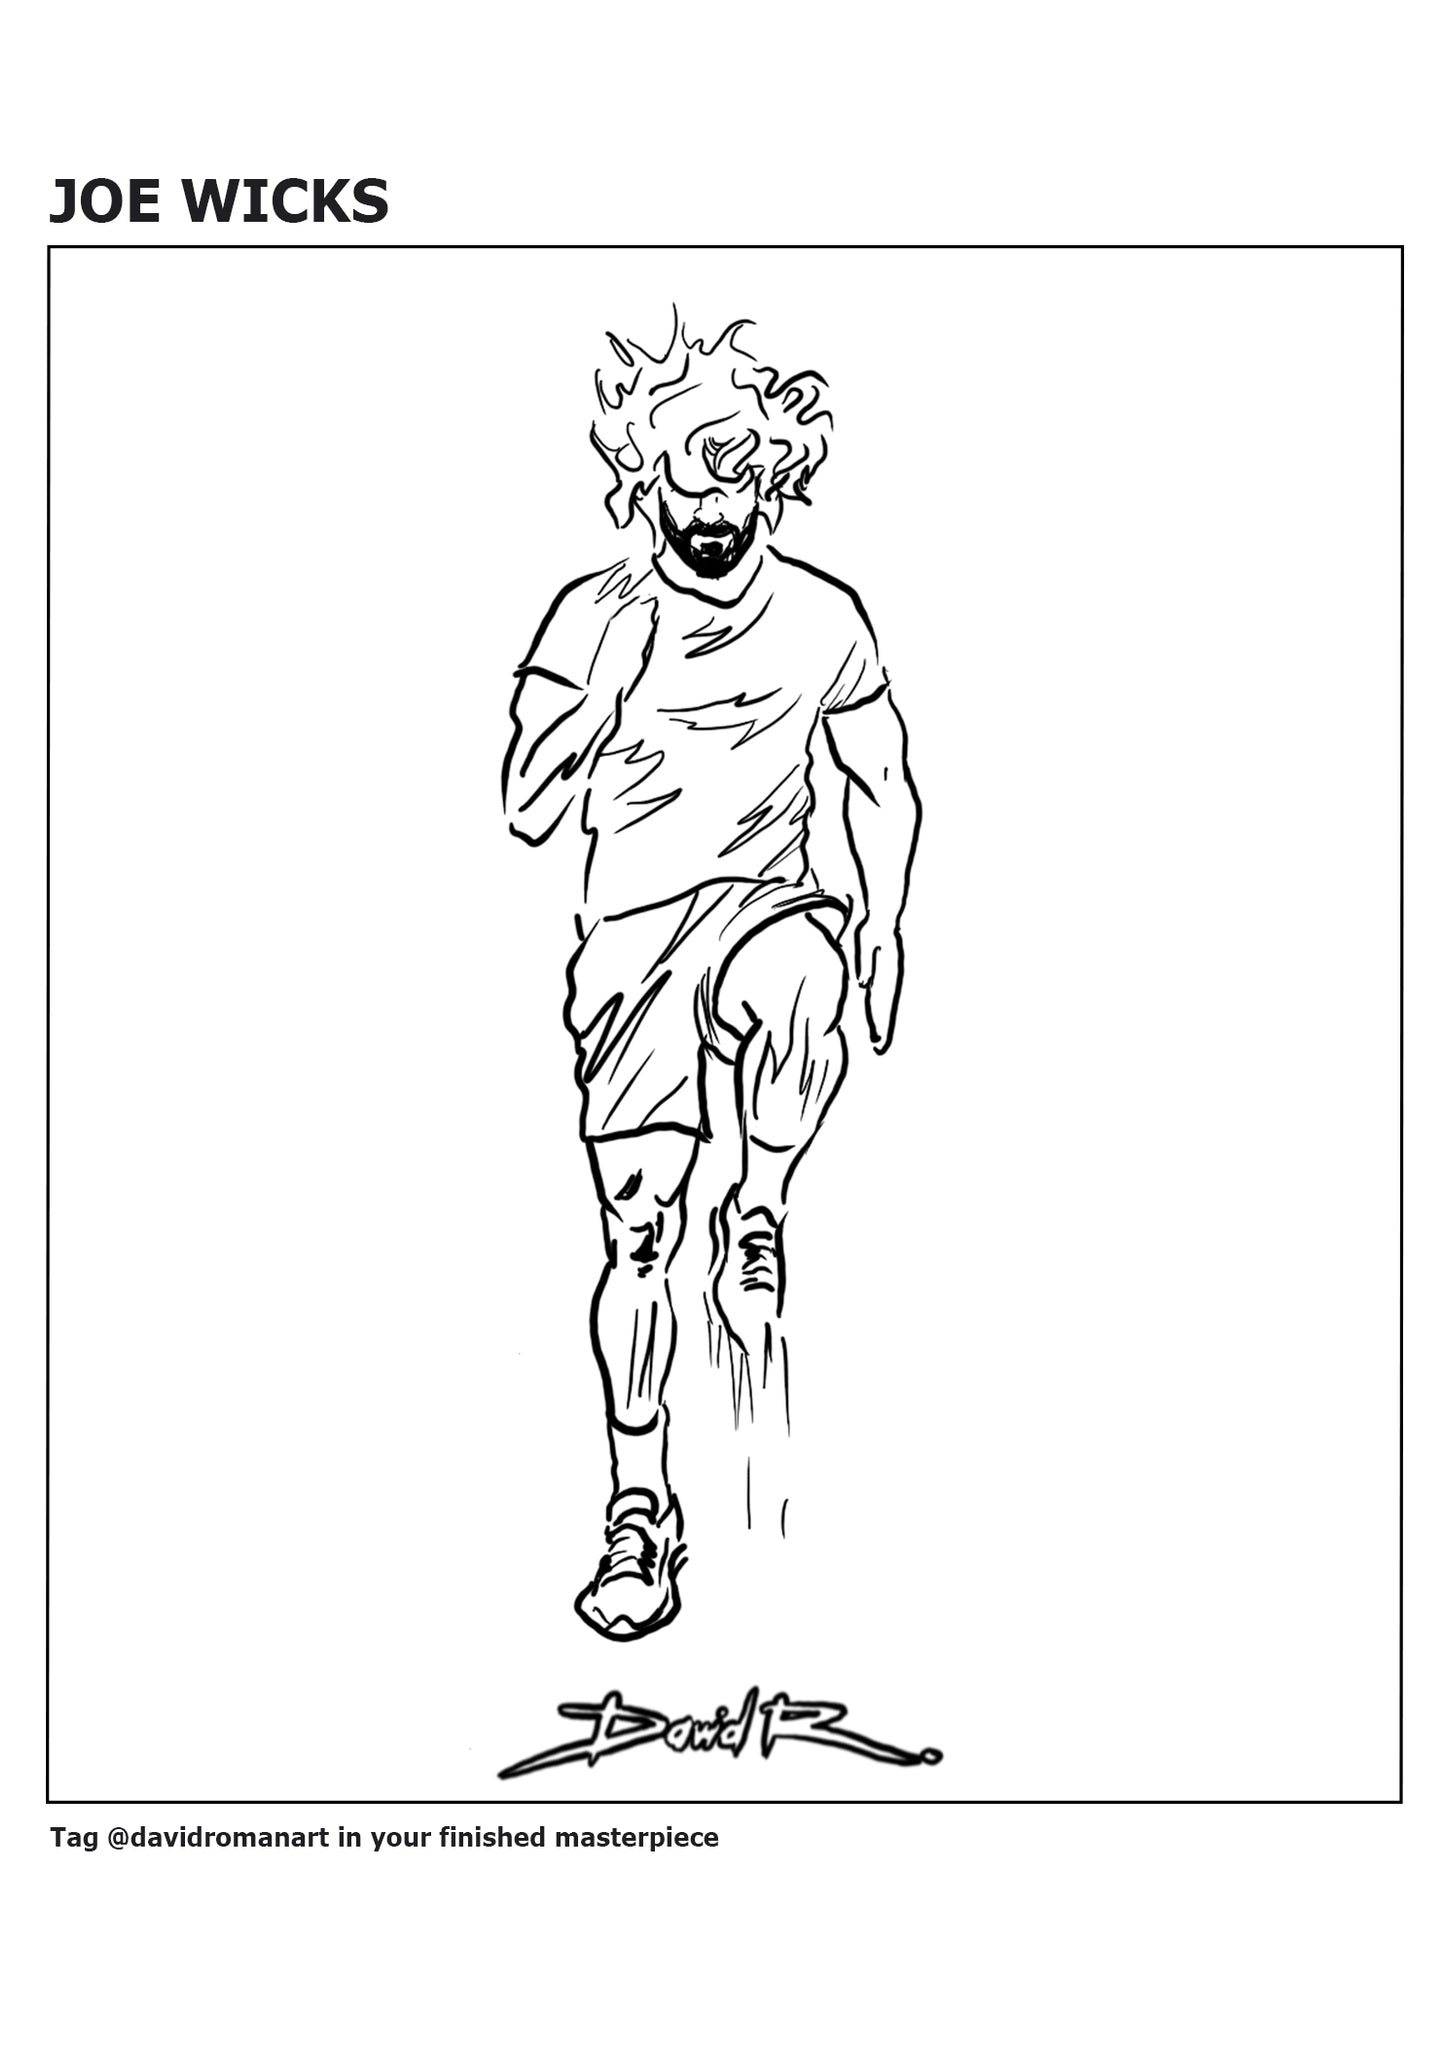 david roman art joe wicks colouring pages pe lessons